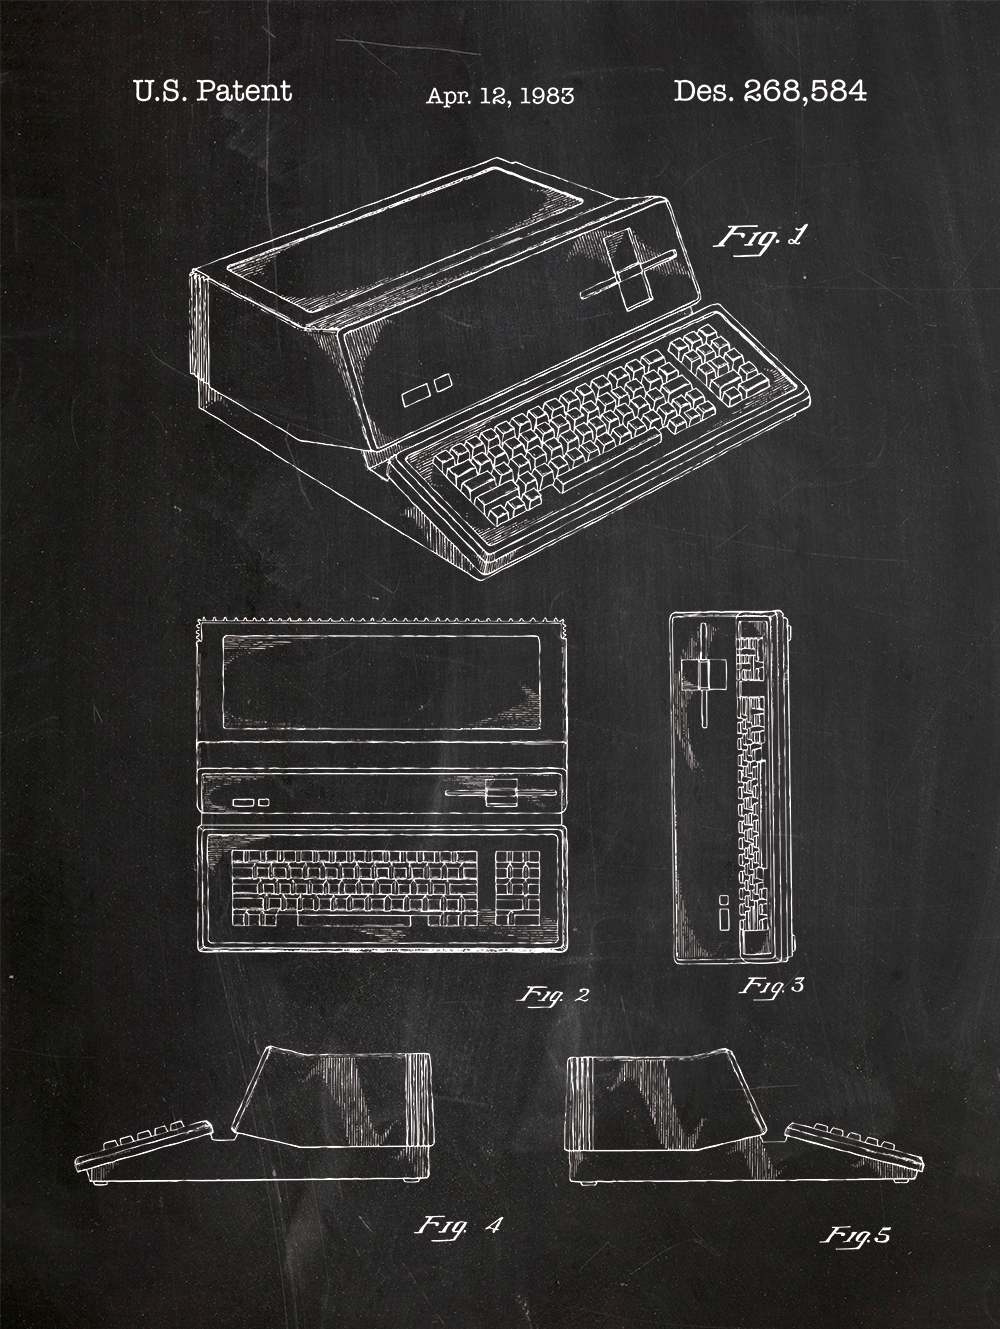 Apple III Patent Print On Chalkboard Background